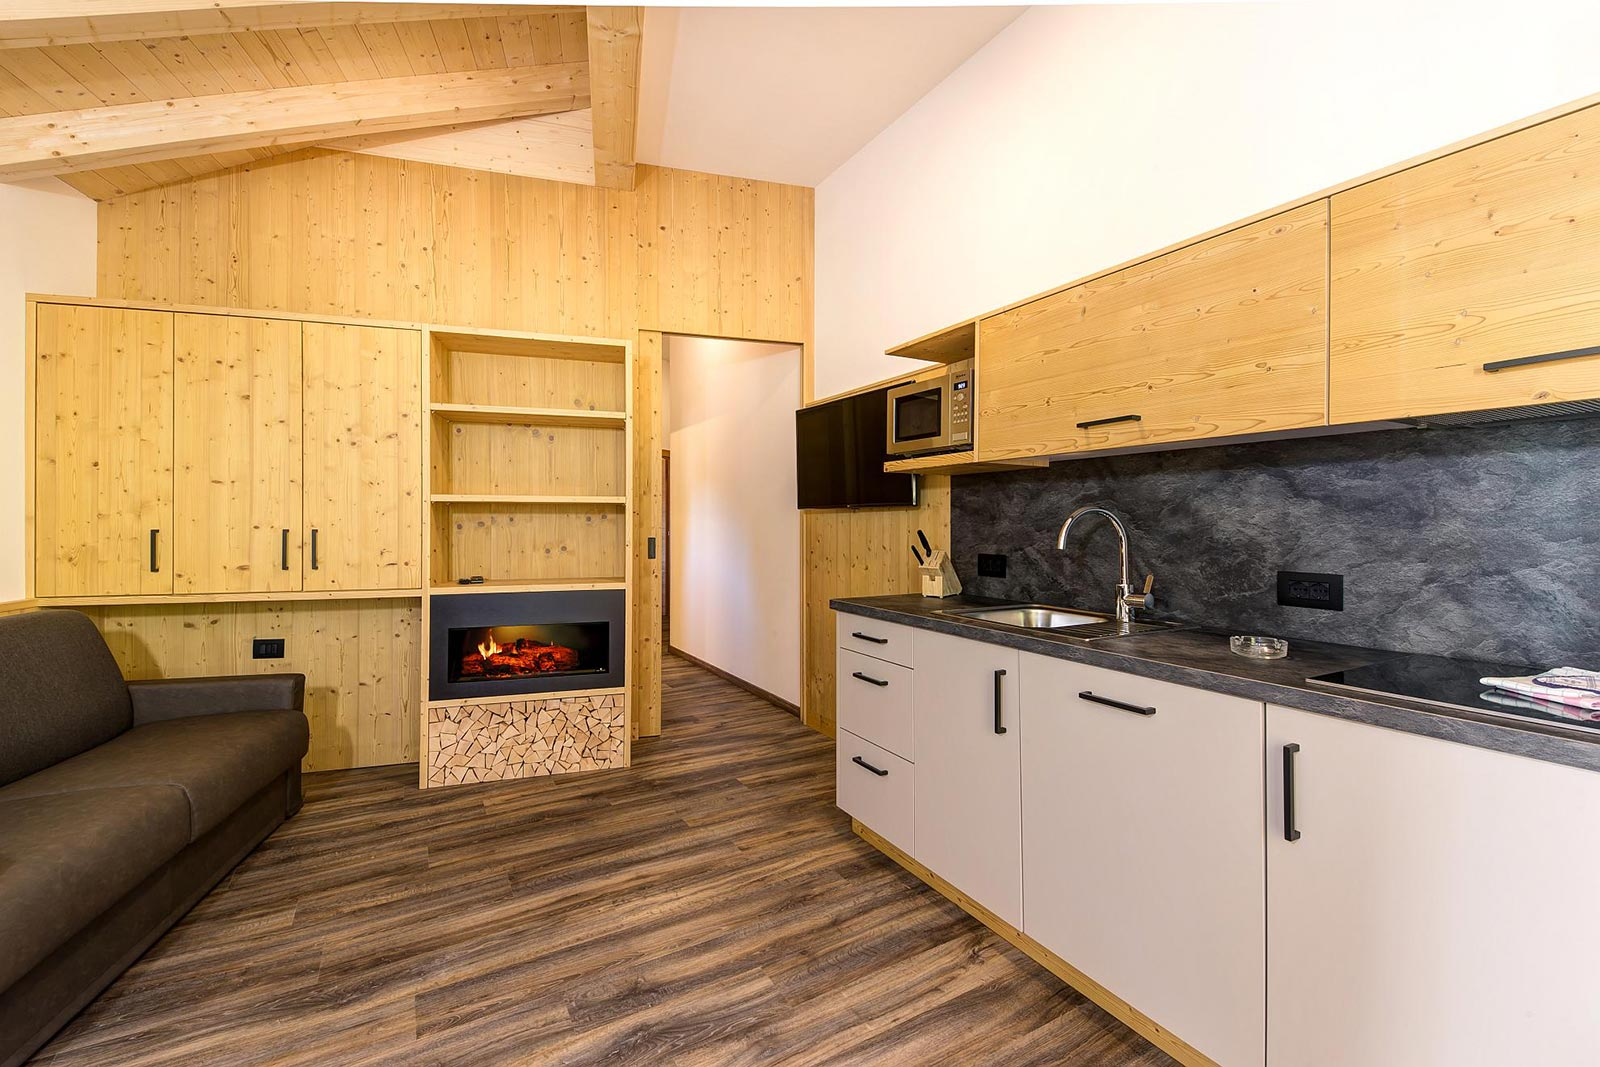 View of the kitchen and a living room of the accomodation in South Tyrol